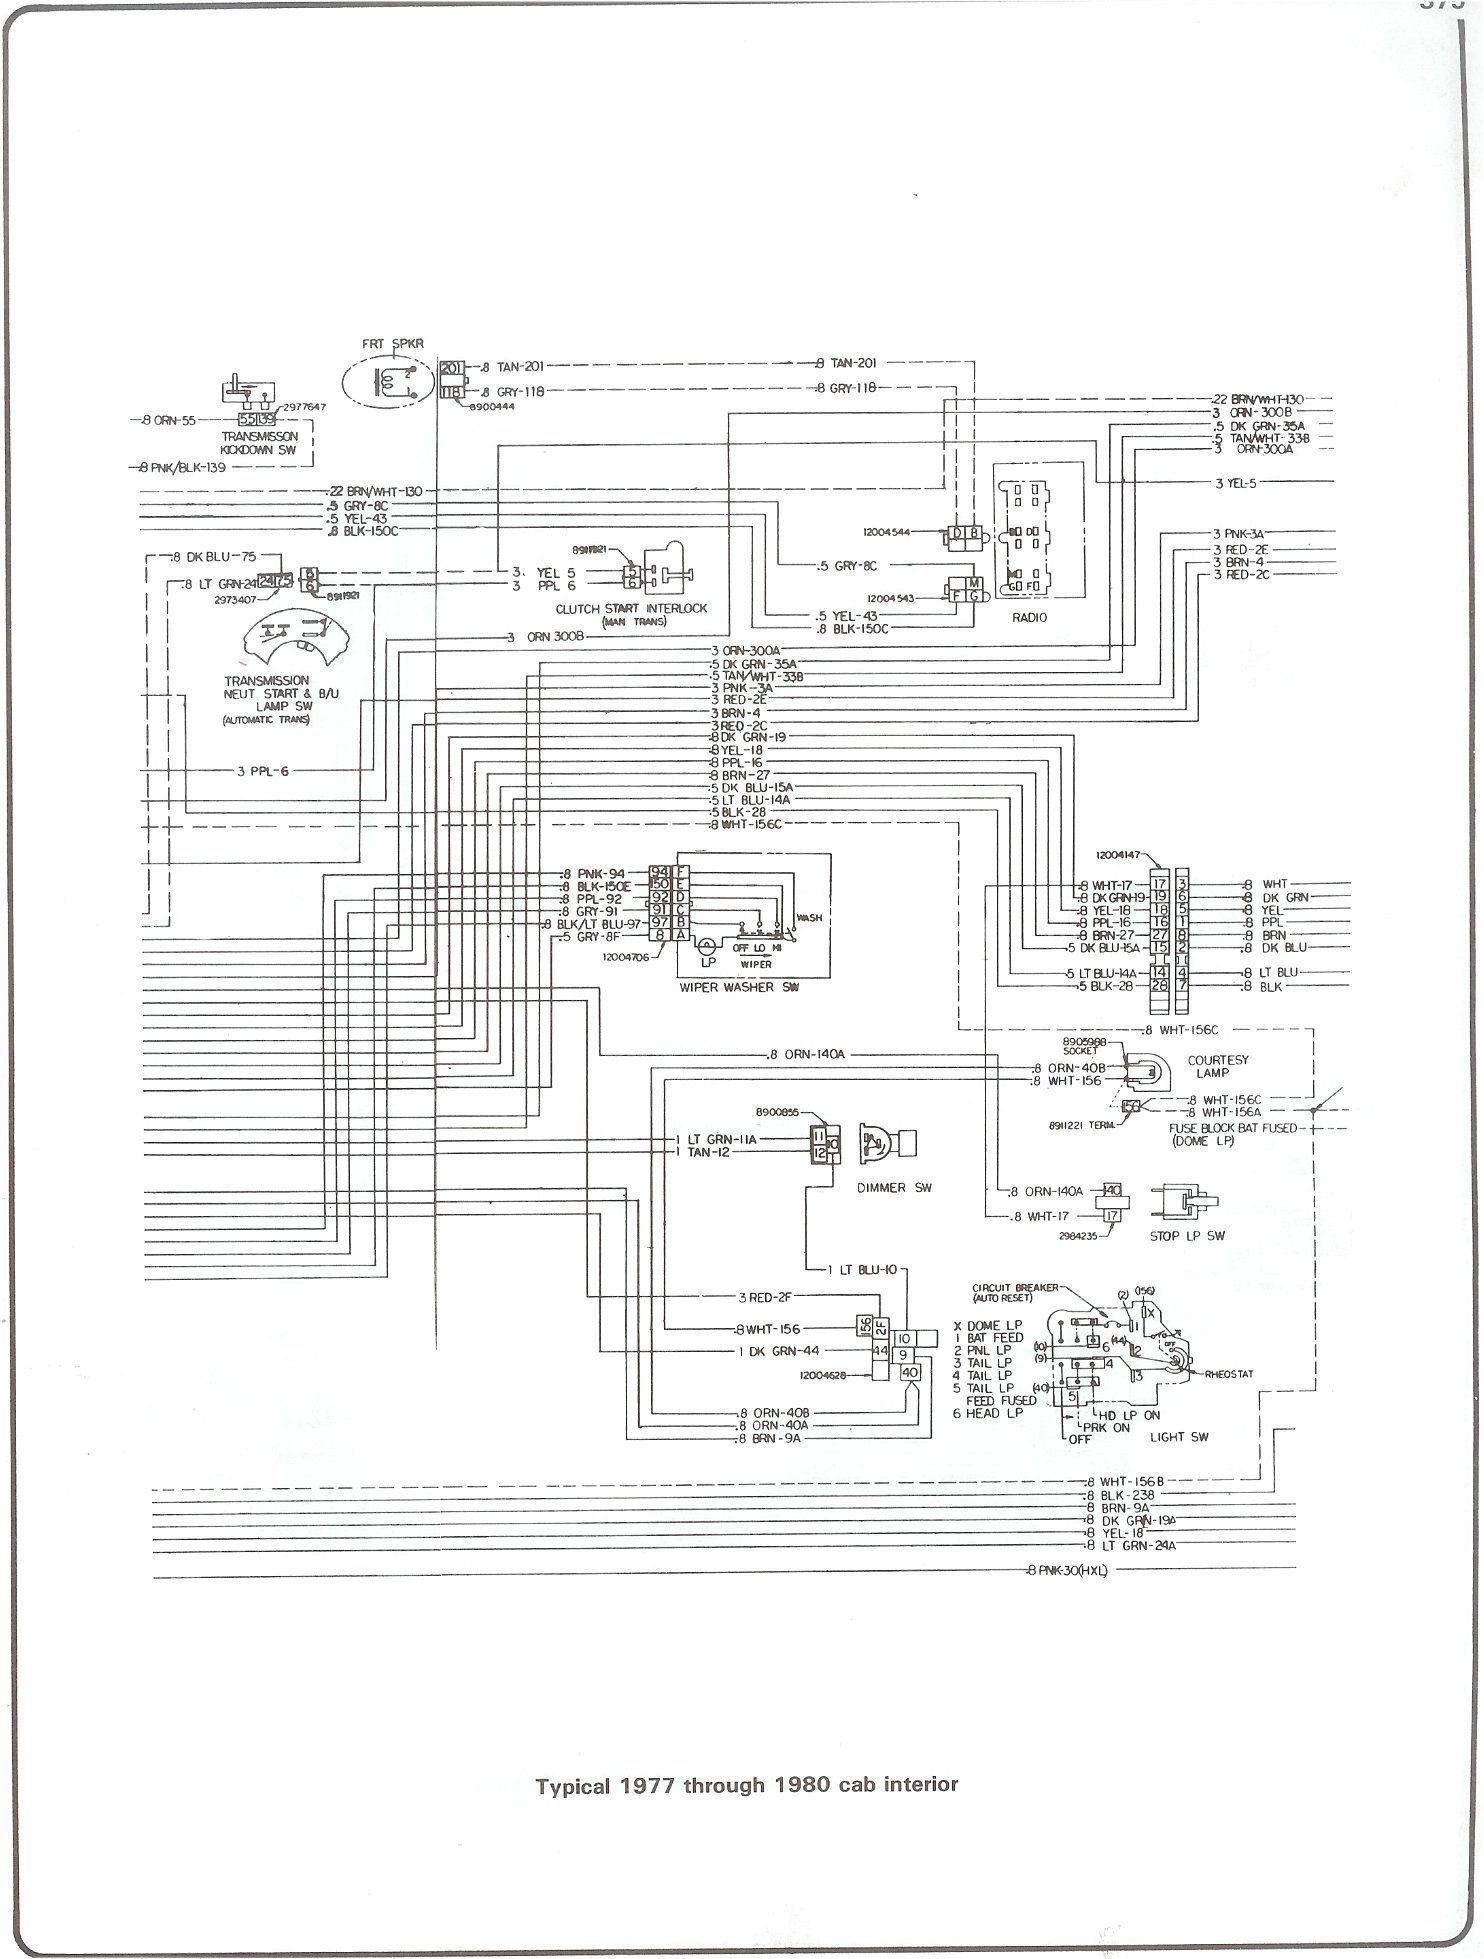 87 Chevy Pickup Wiring Diagram G9 Yamaha Wiring Diagram For Wiring Diagram Schematics